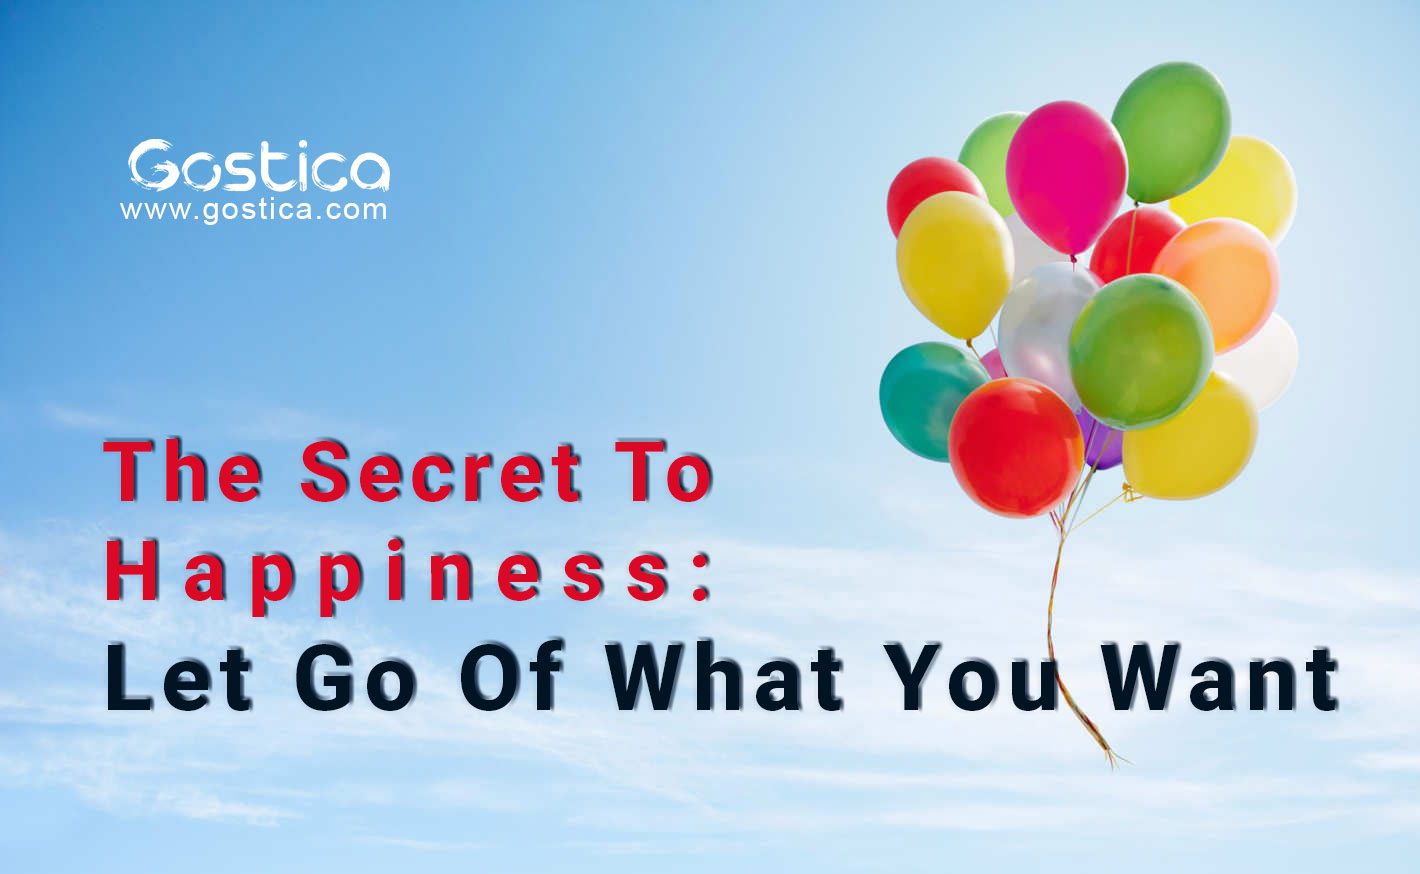 The-Secret-To-Happiness-Let-Go-Of-What-You-Want.jpg